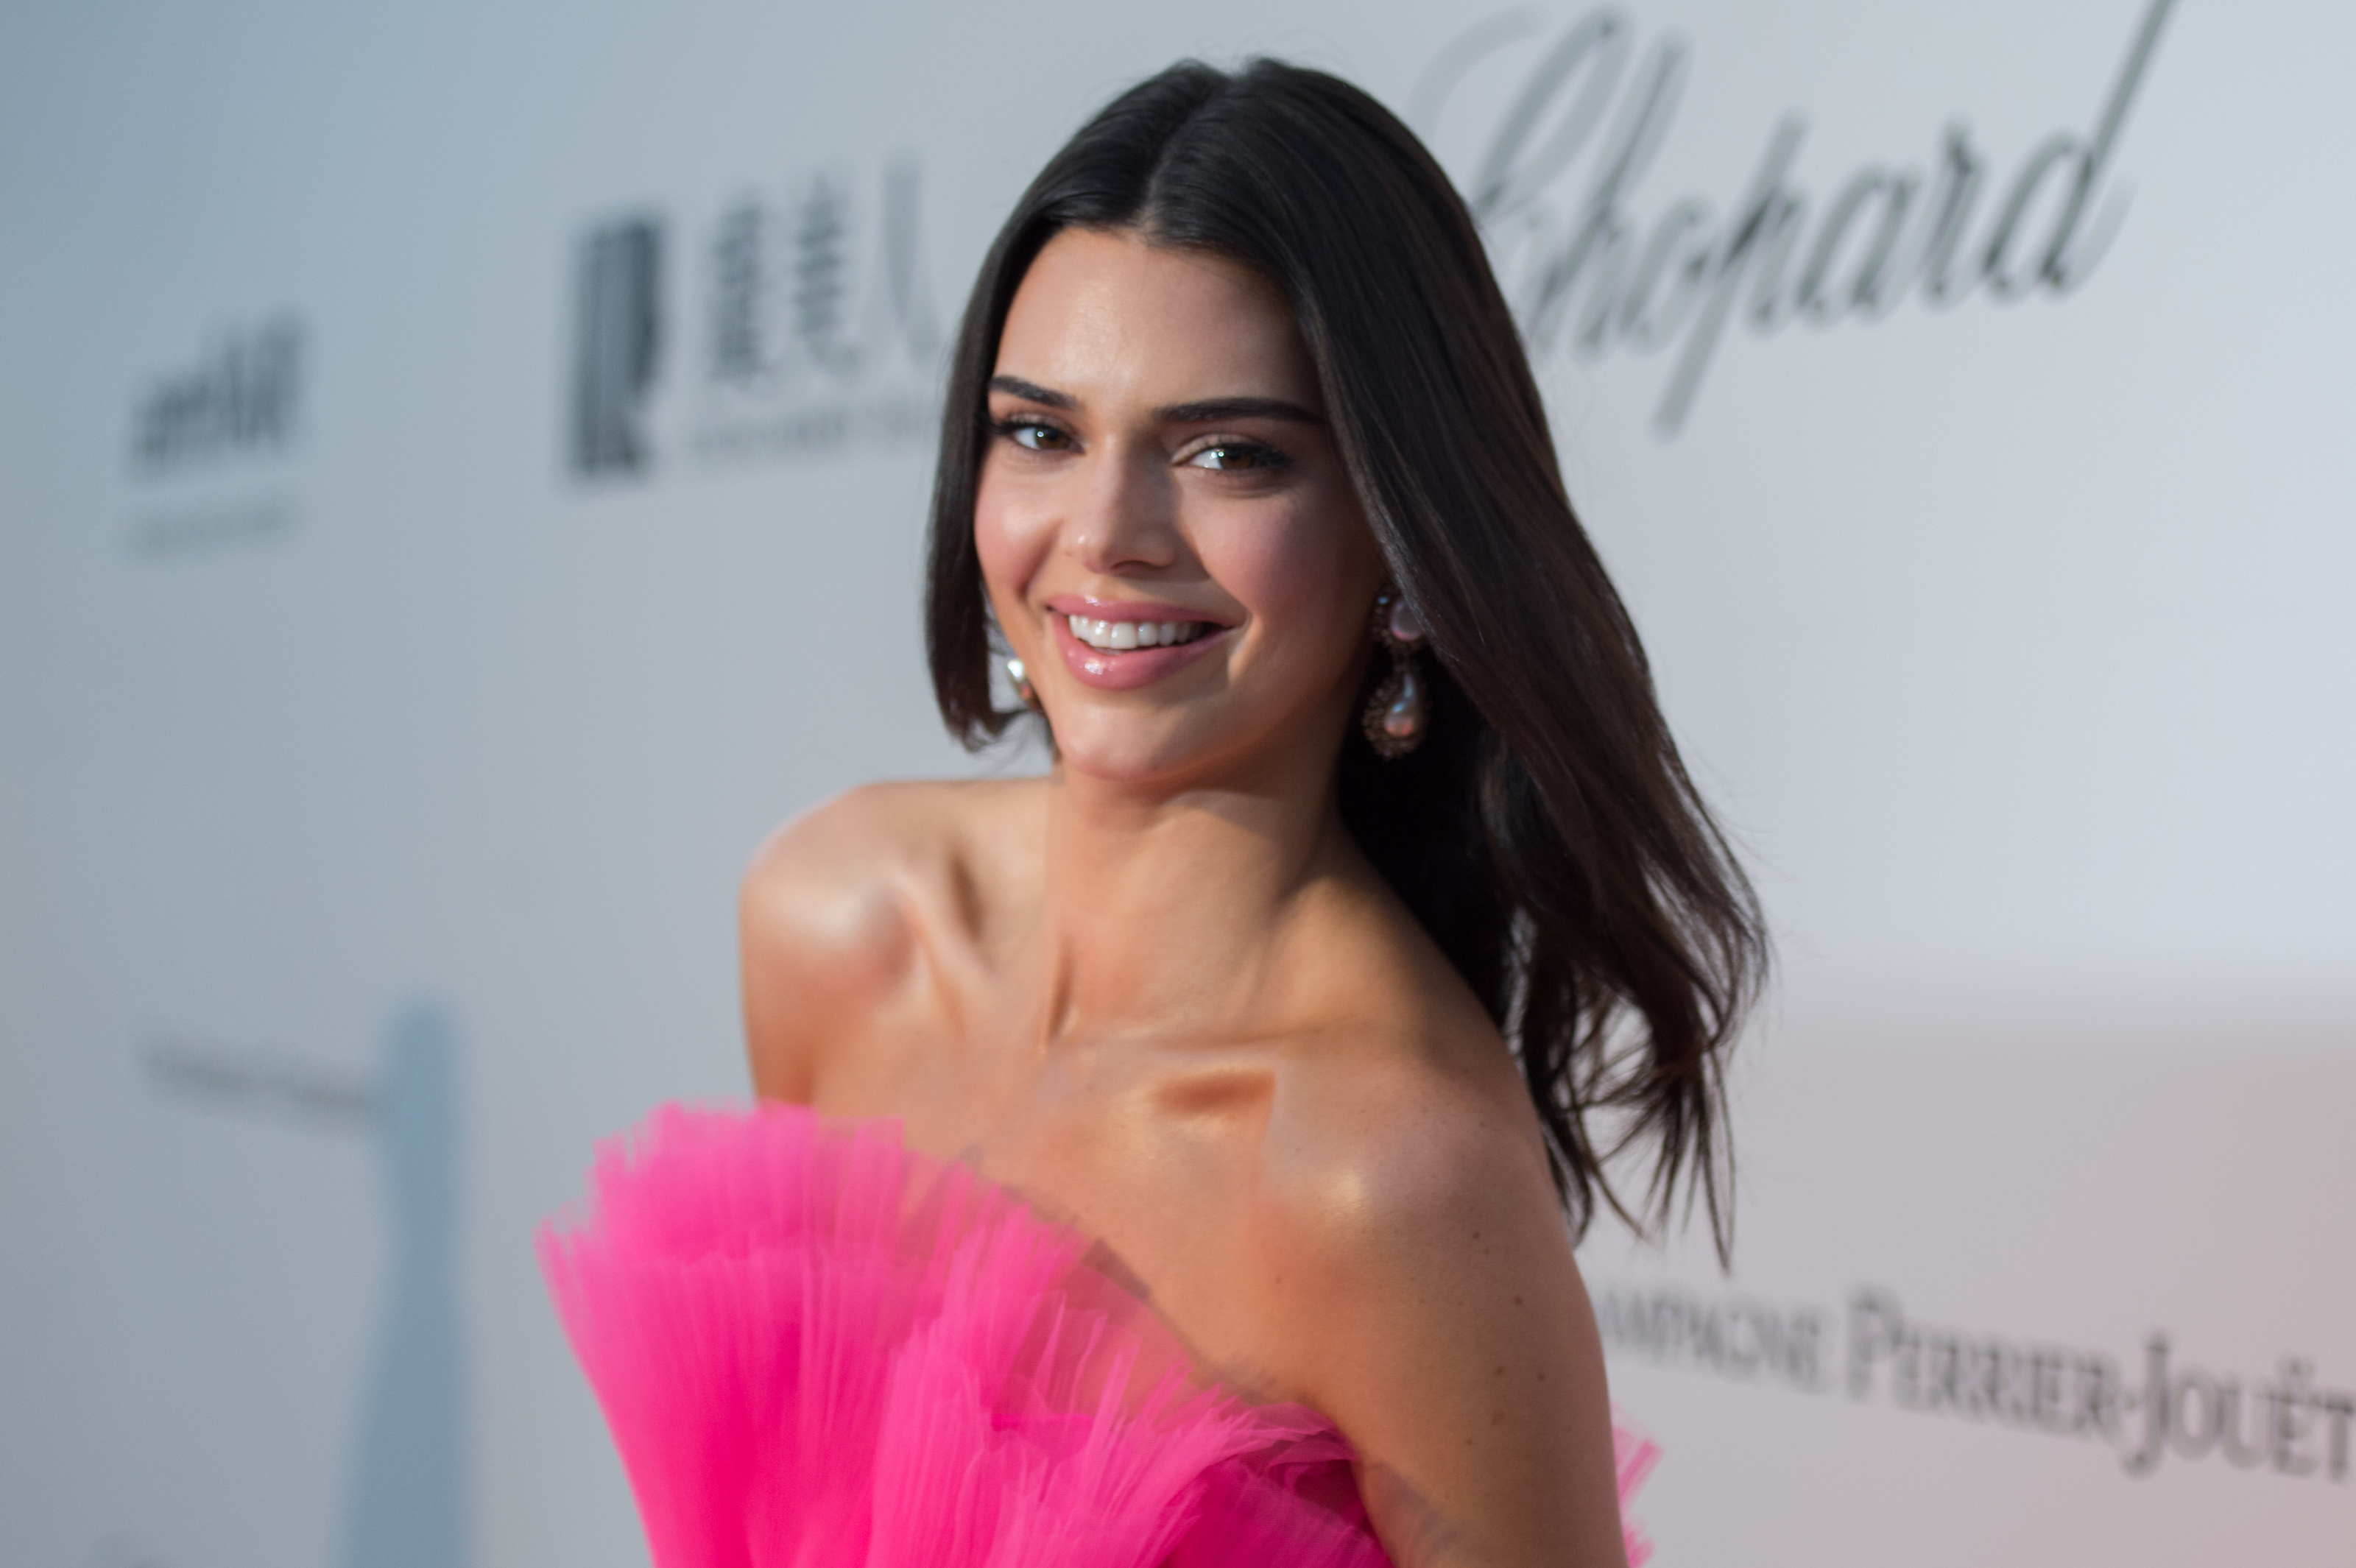 Kendall Jenner Shows Off Smile Celebrating One Year With Moon Oral